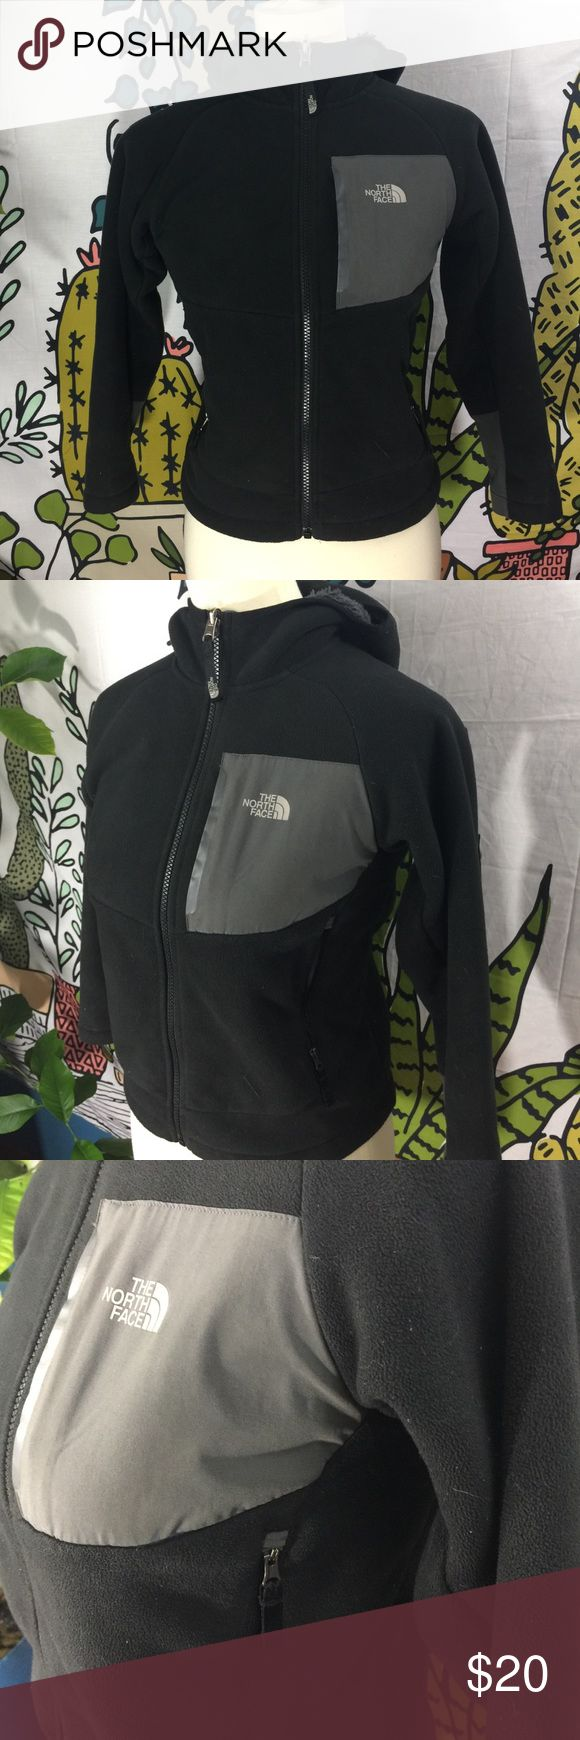 Kids North Face Zip Jacket Great condition, super warm jacket with faux shearling lining. All zippers work, no pills, no tears or other defects. These jackets last forever! The North Face Jackets & Coats